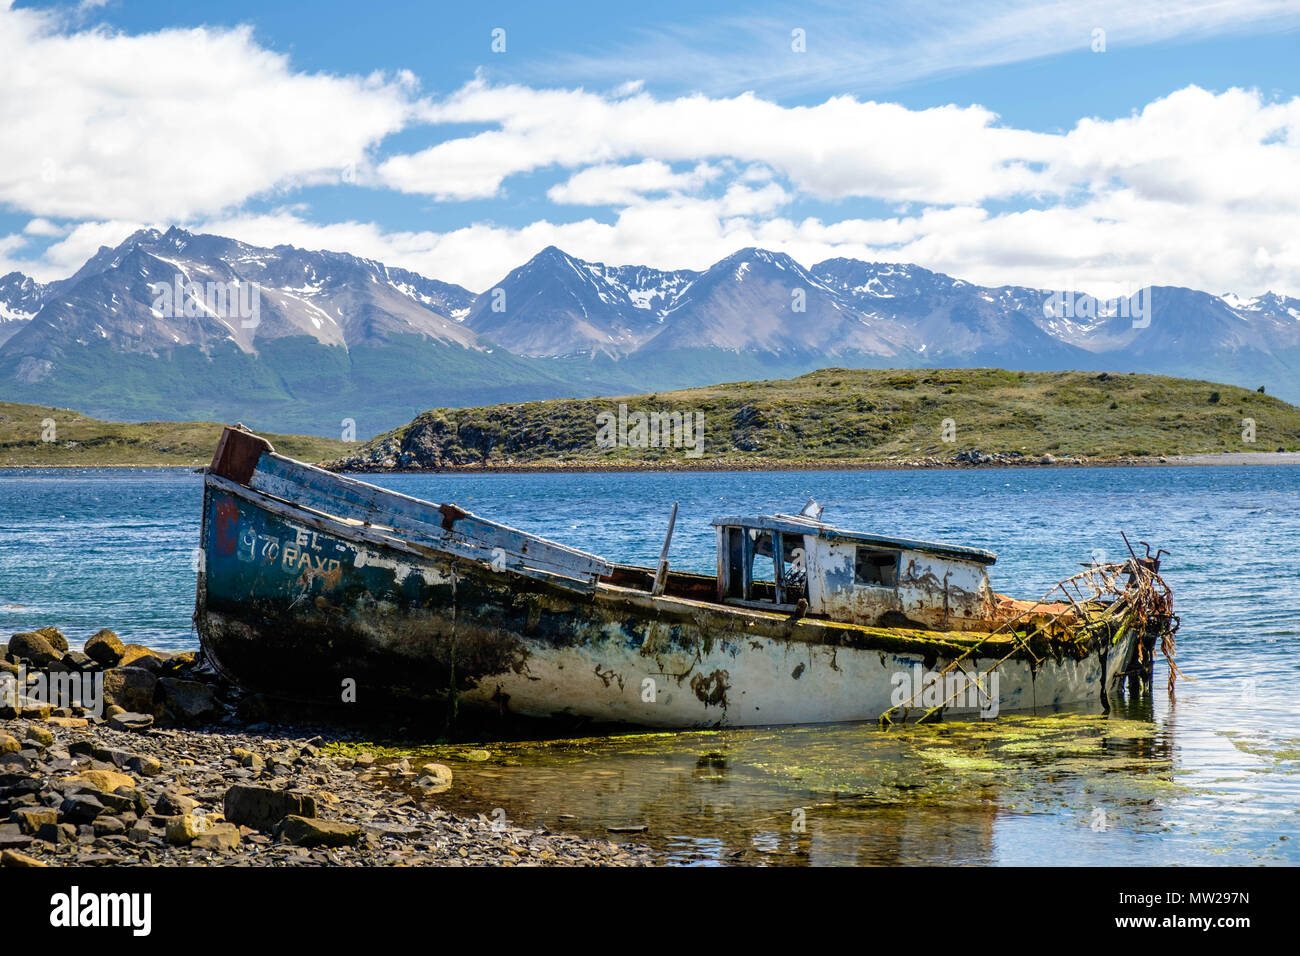 A ship wreck lies on the shore of the Beagle Channel near the small Chilean village of Puerto Navarino. The isle is an adventurous travel destination. - Stock Image